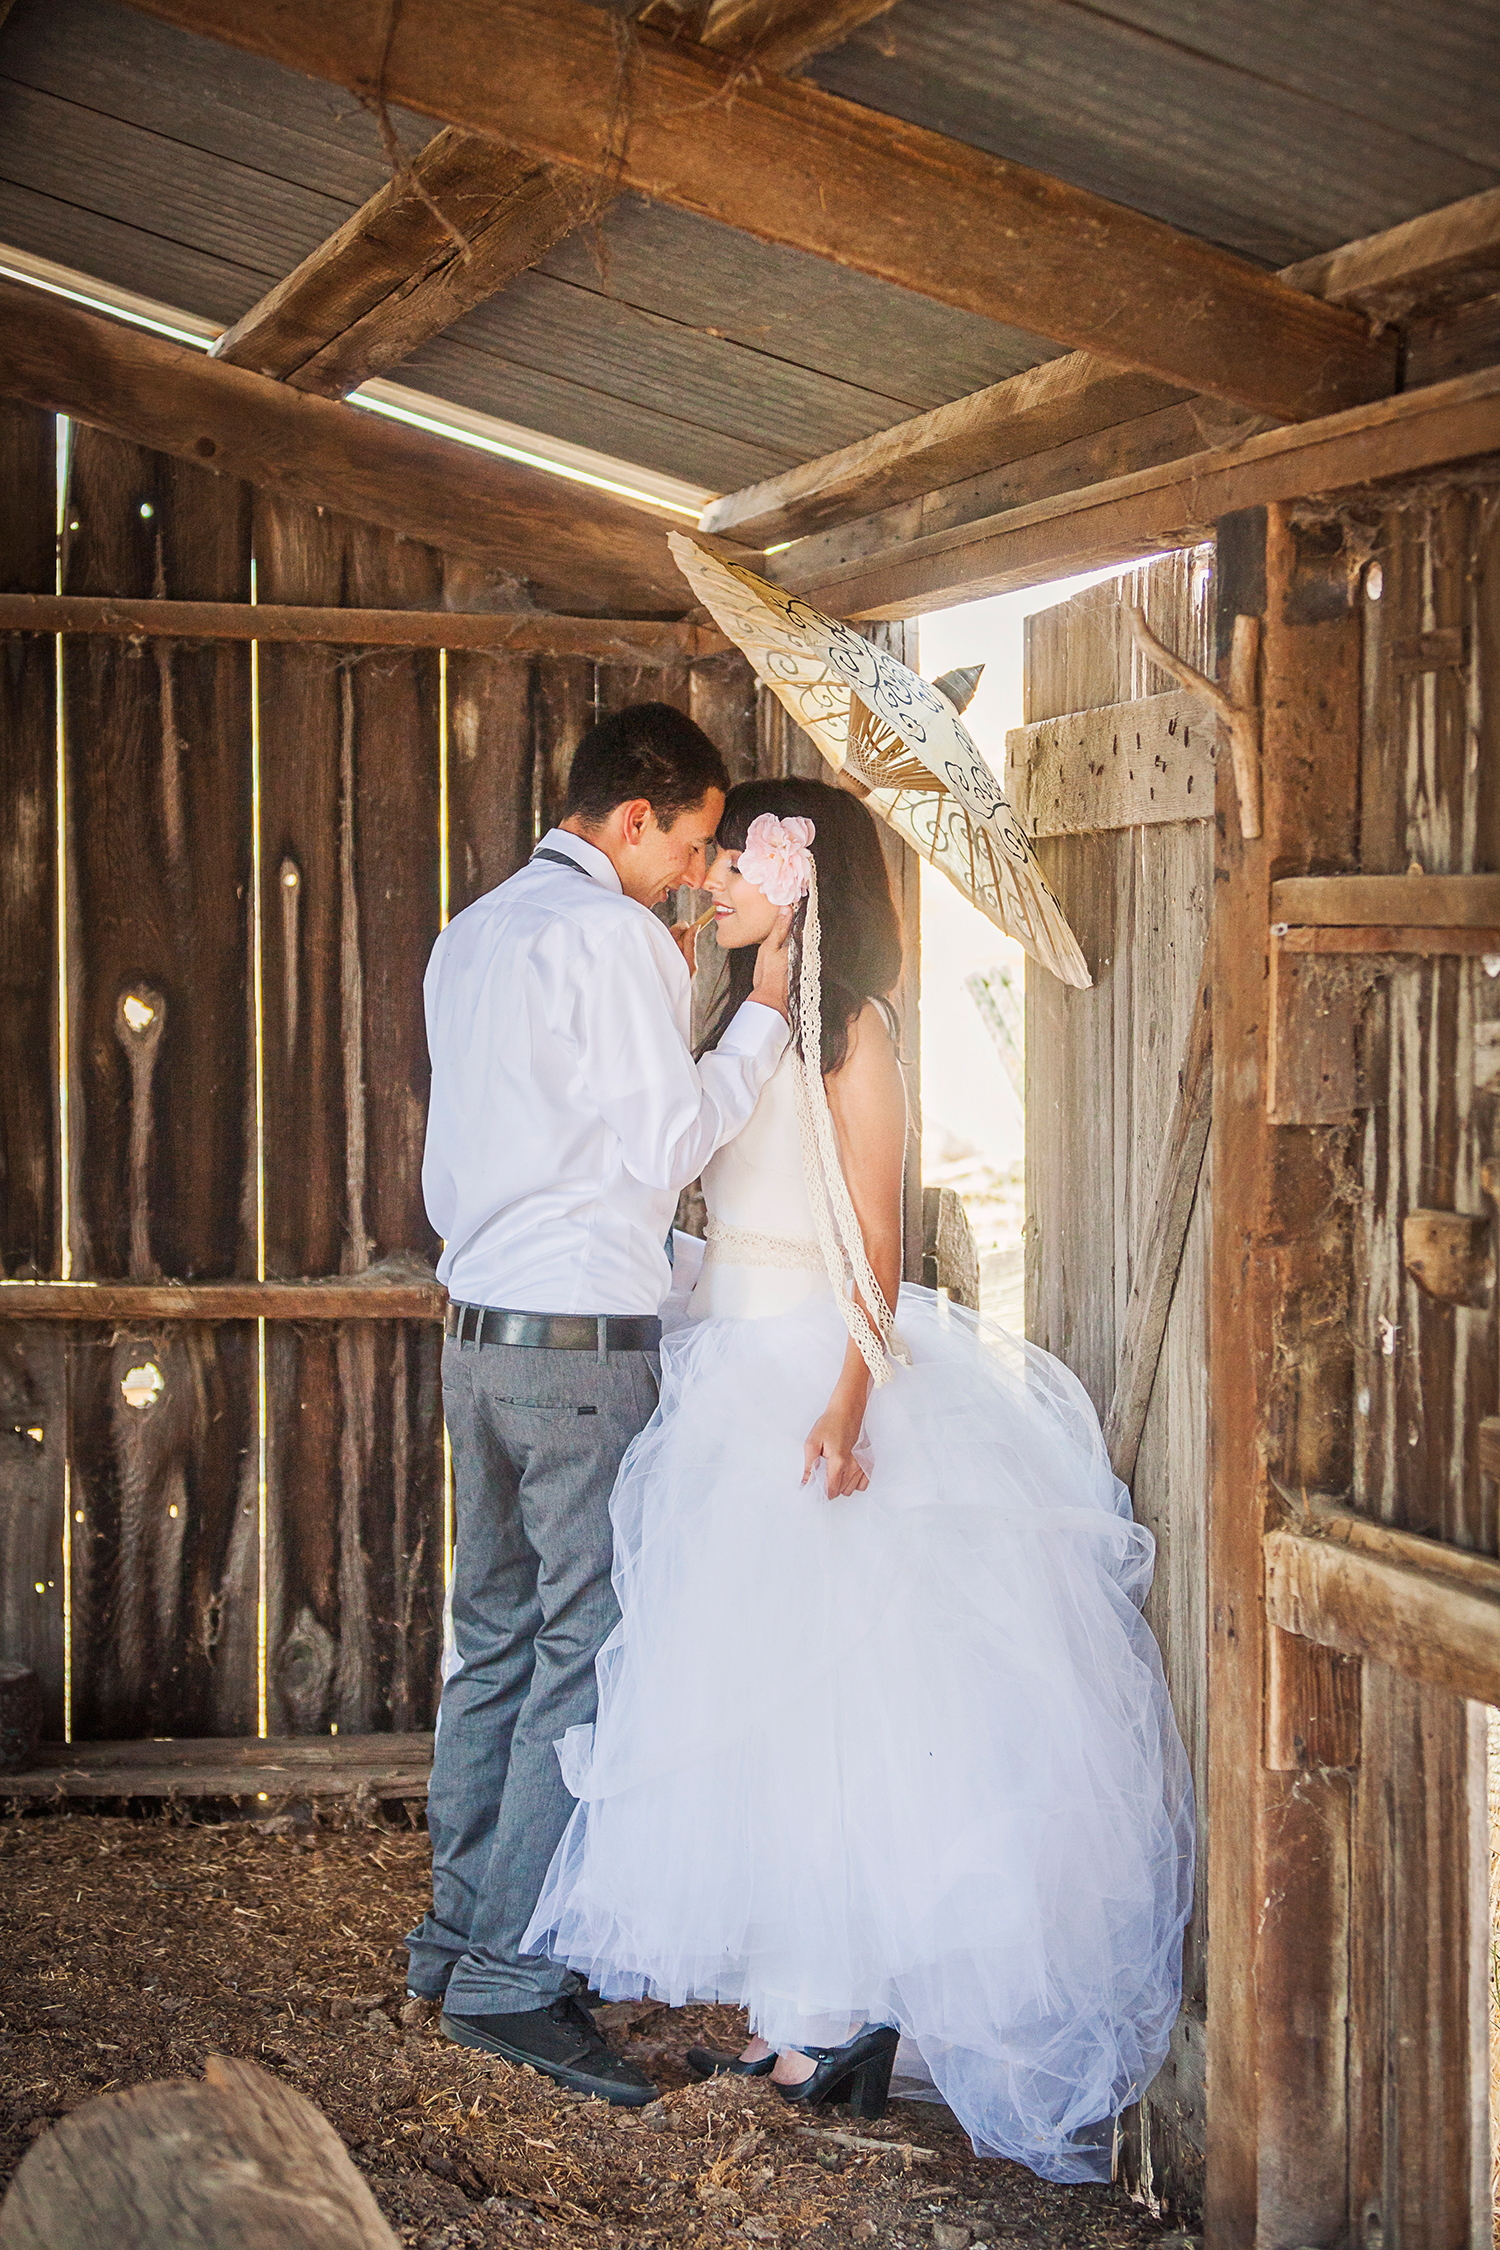 Dena_Rooney_Wedding_Photographer_Ranch_008.jpg